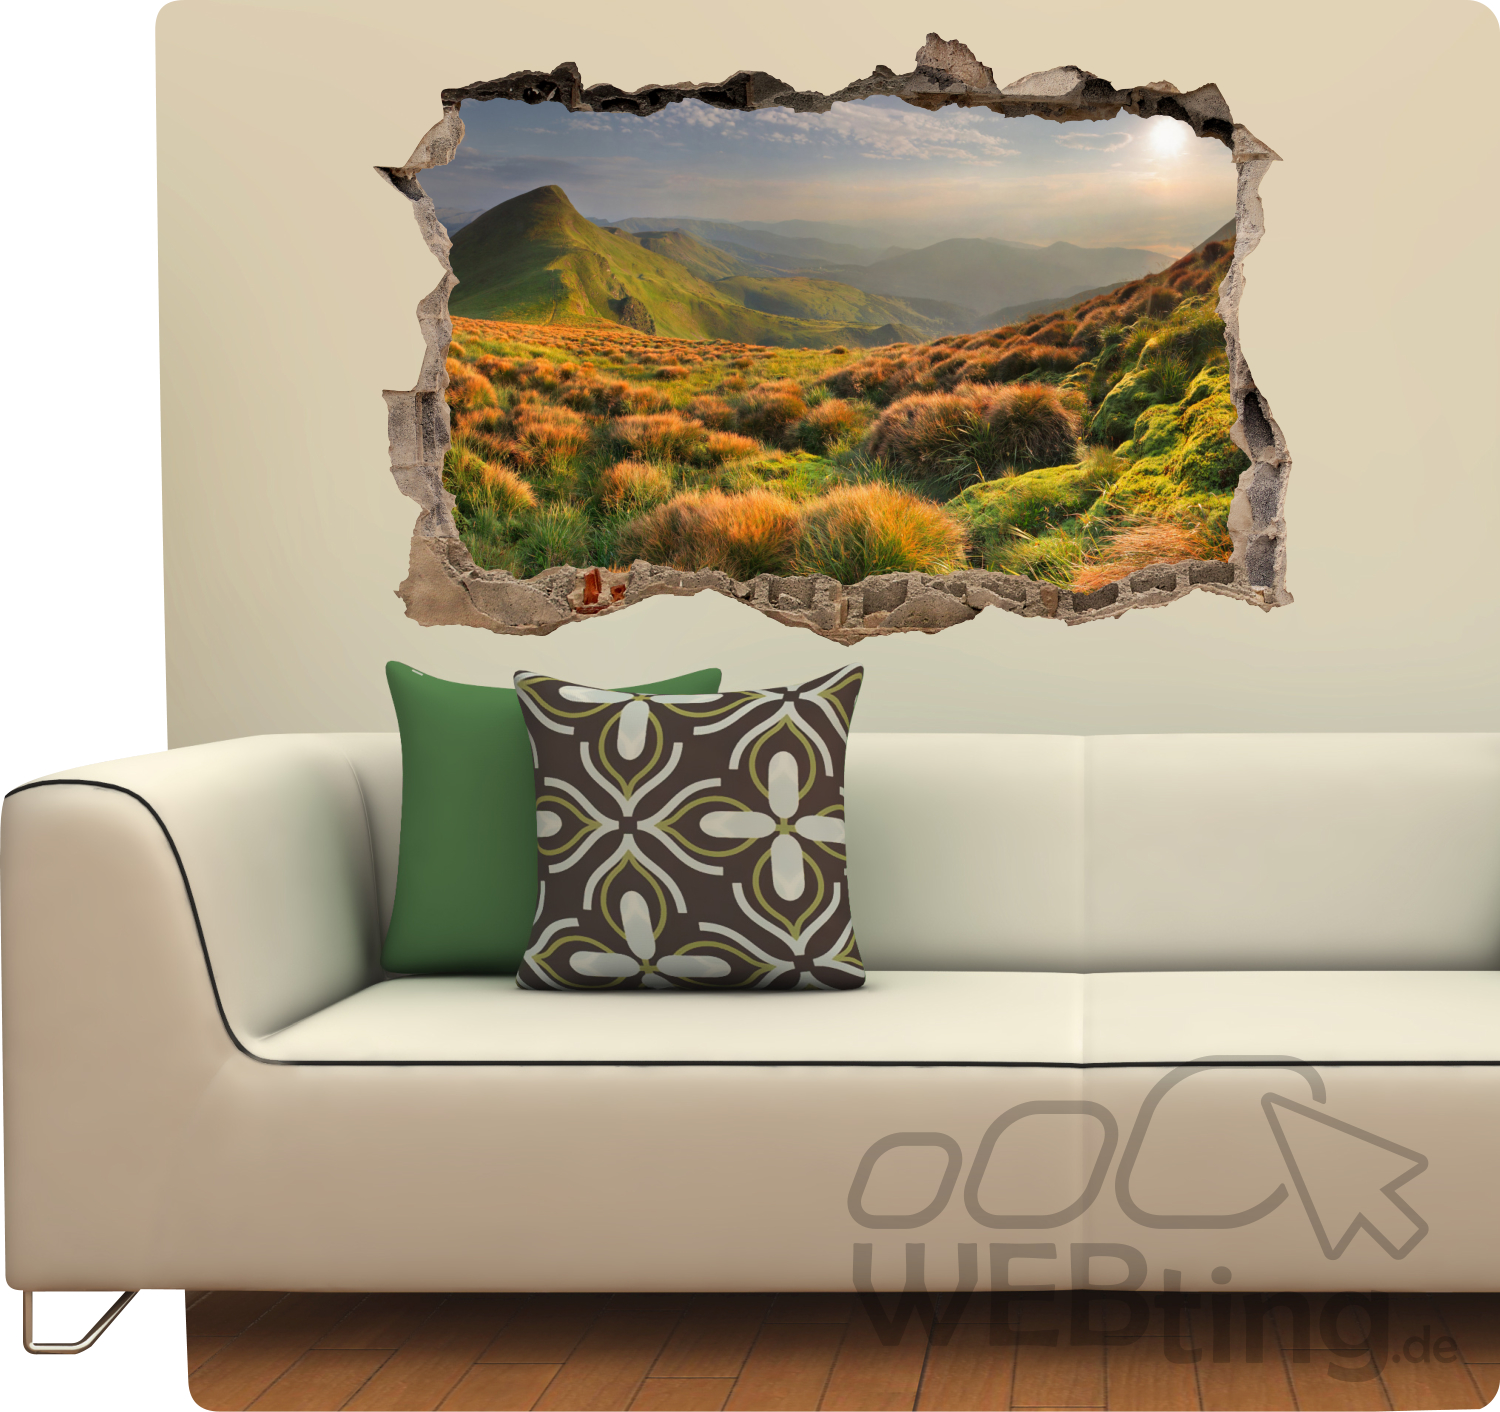 mauerdurchbruch wiese berge aufkleber wandtattoo sticker fototapete kleber. Black Bedroom Furniture Sets. Home Design Ideas